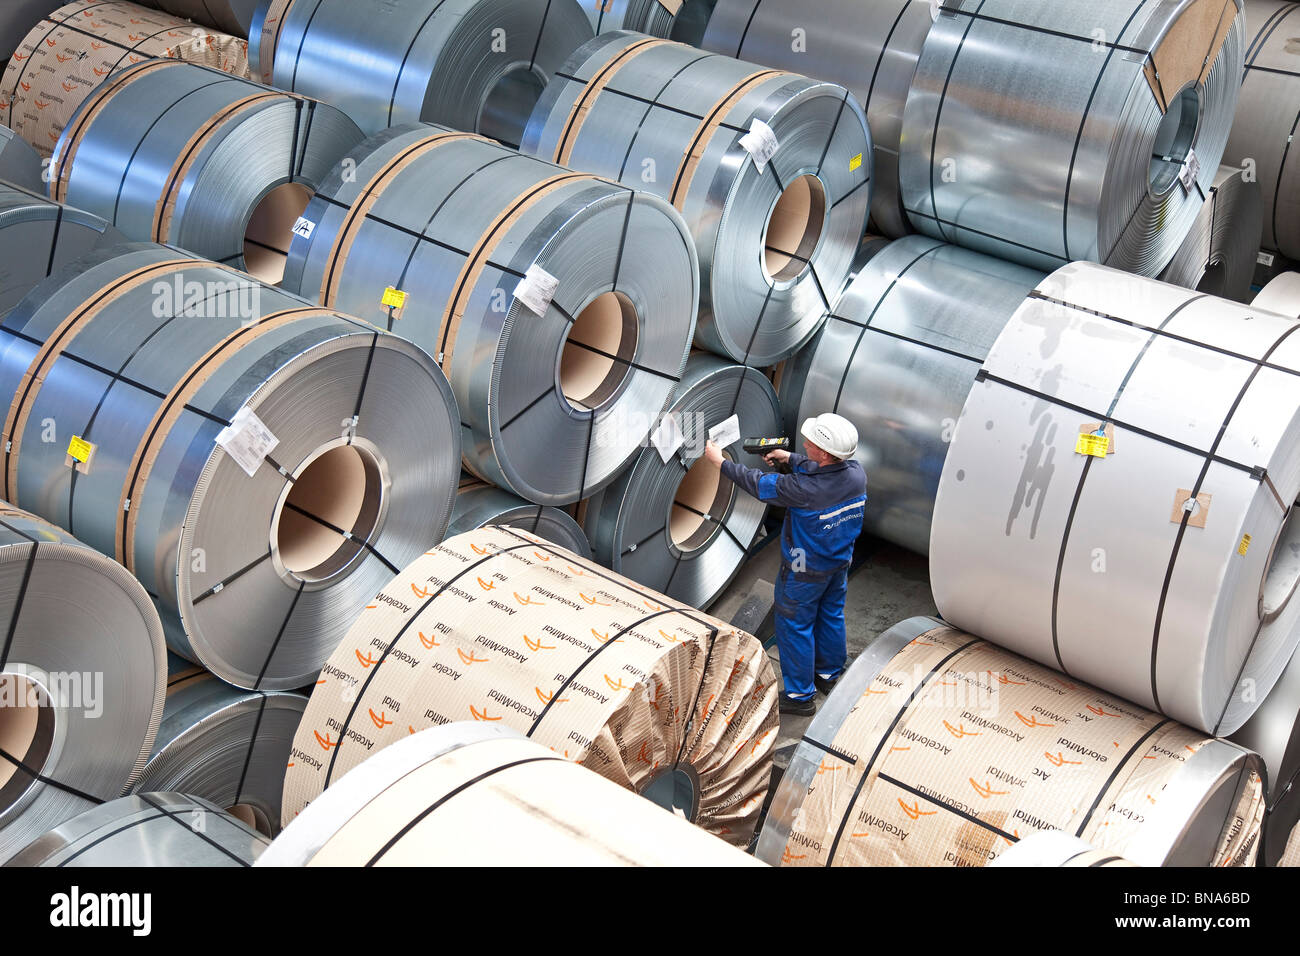 ArcelorMittal: production of steel coils; store of complete steel coils ready for shipping - Stock Image